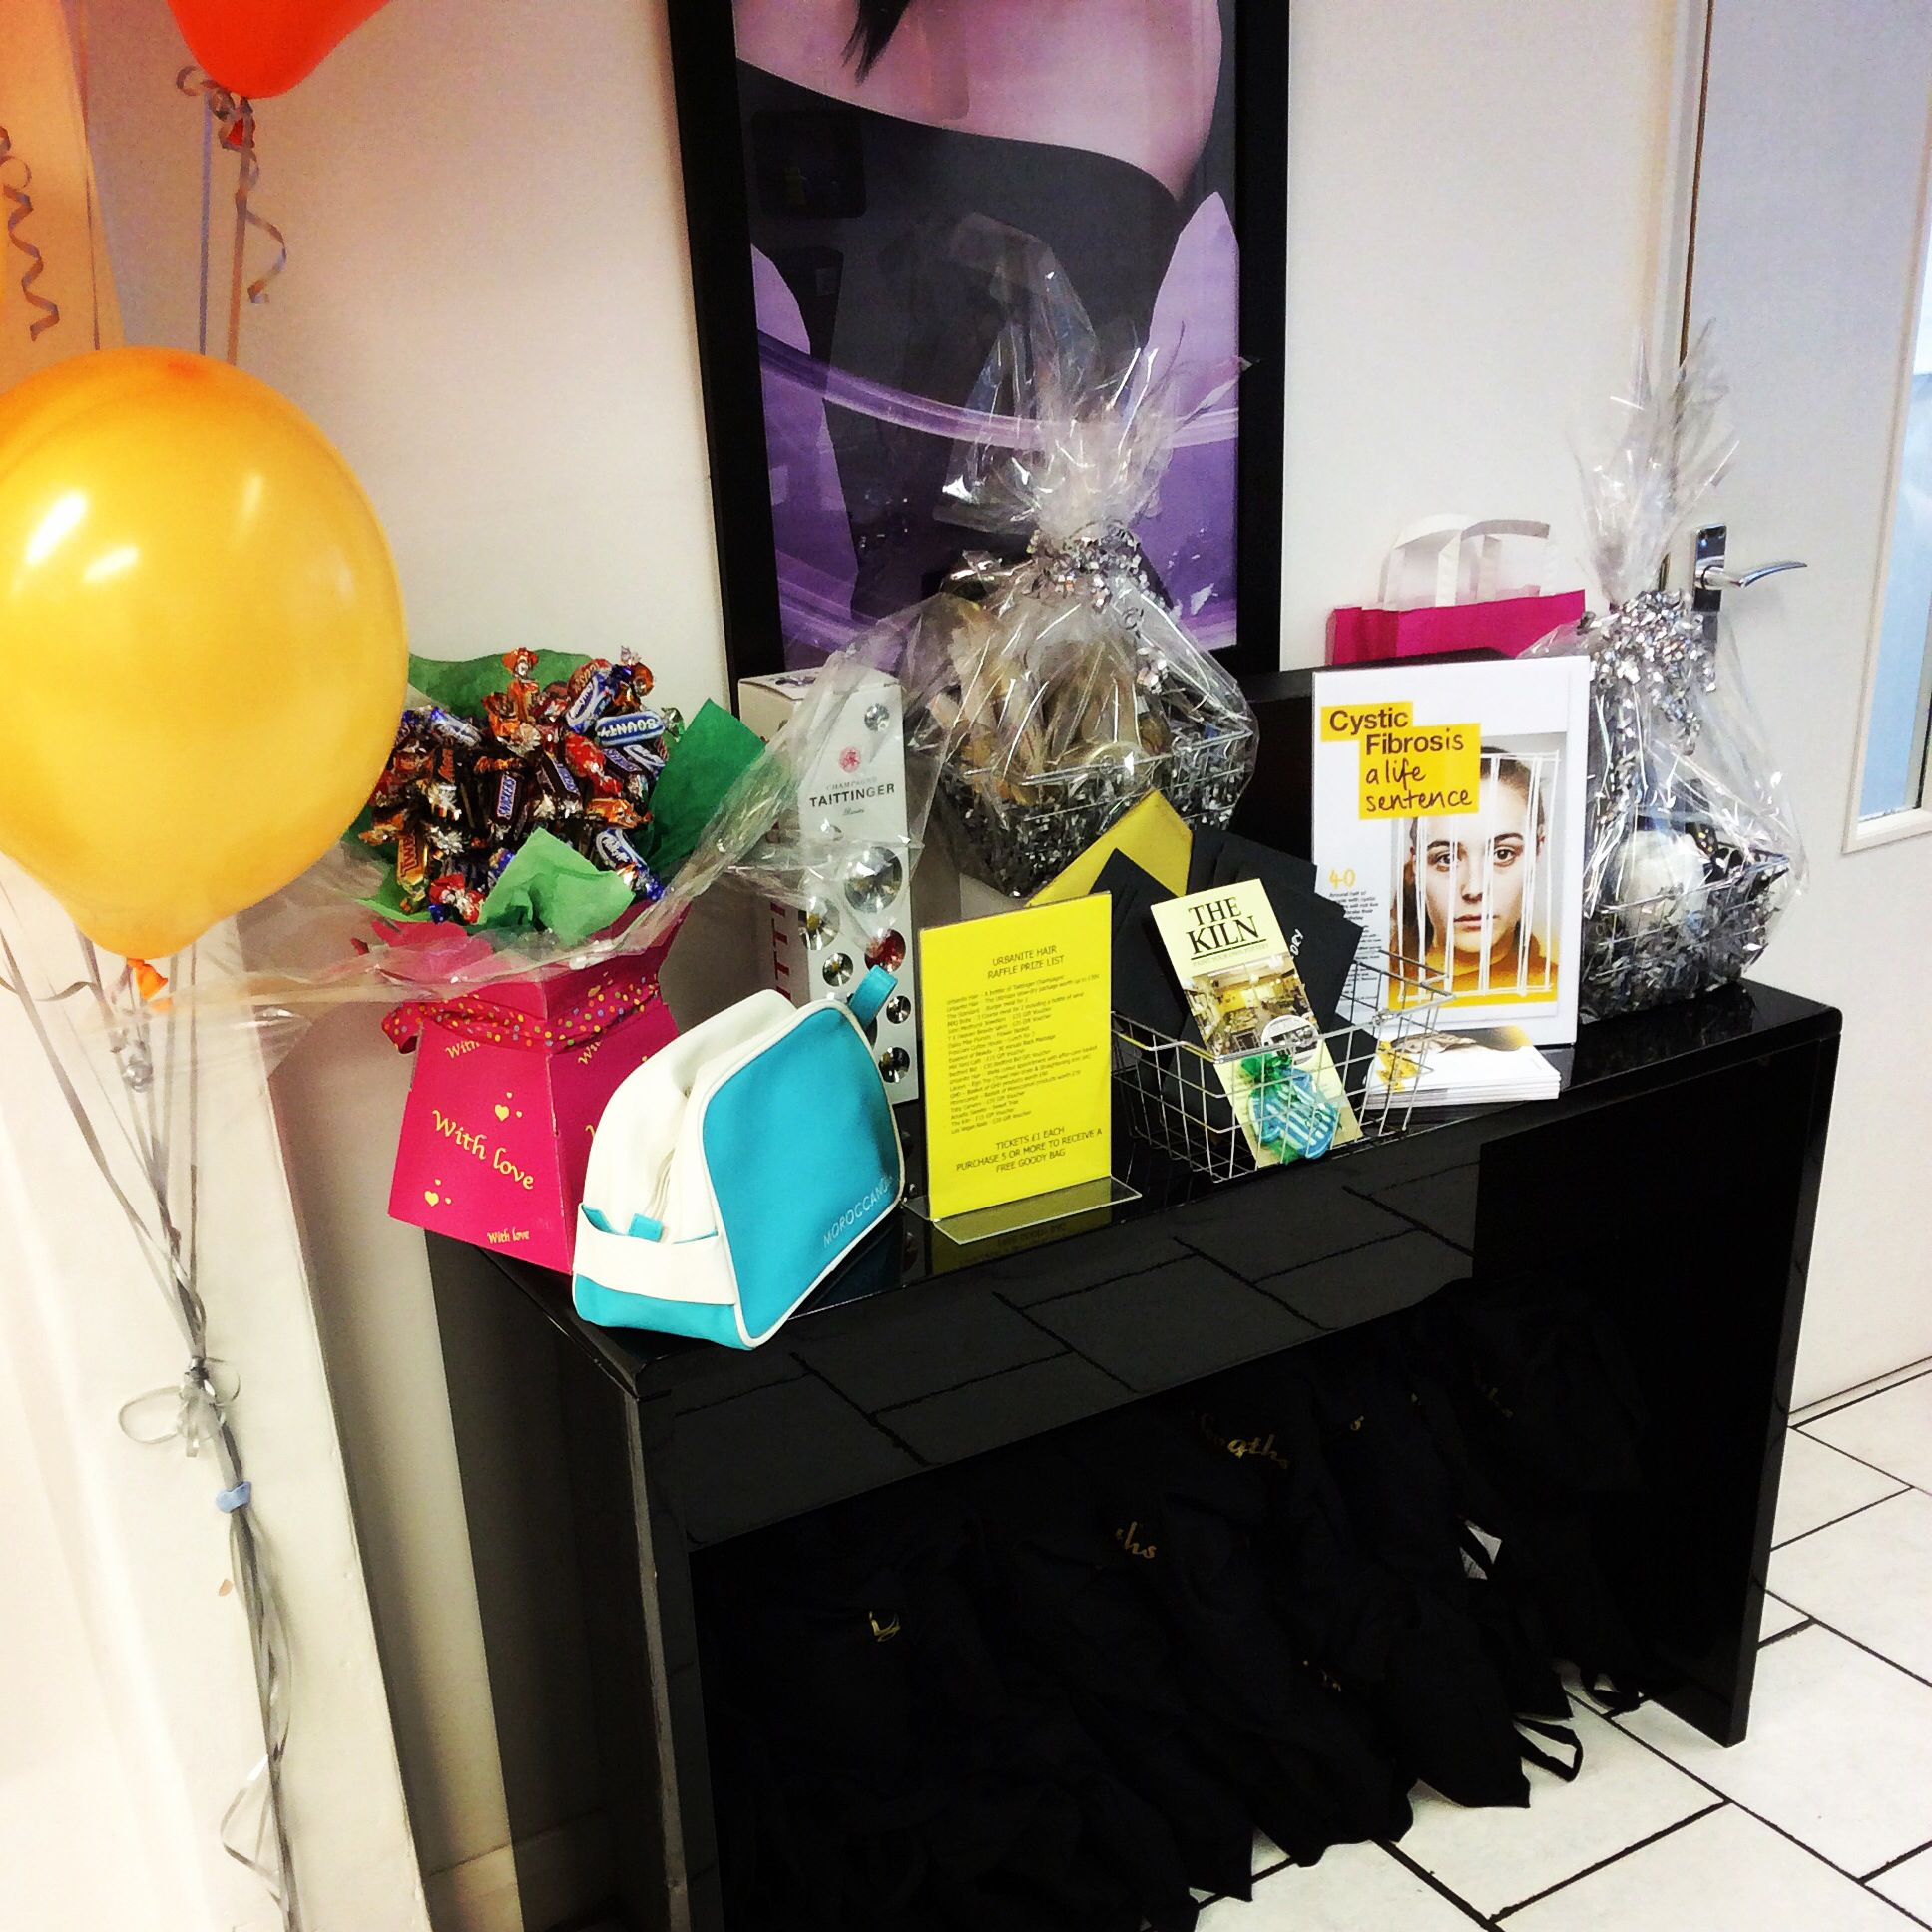 Our generous raffle prizes donated to us from local businesses in #bedford #salon #love #hairdressers #